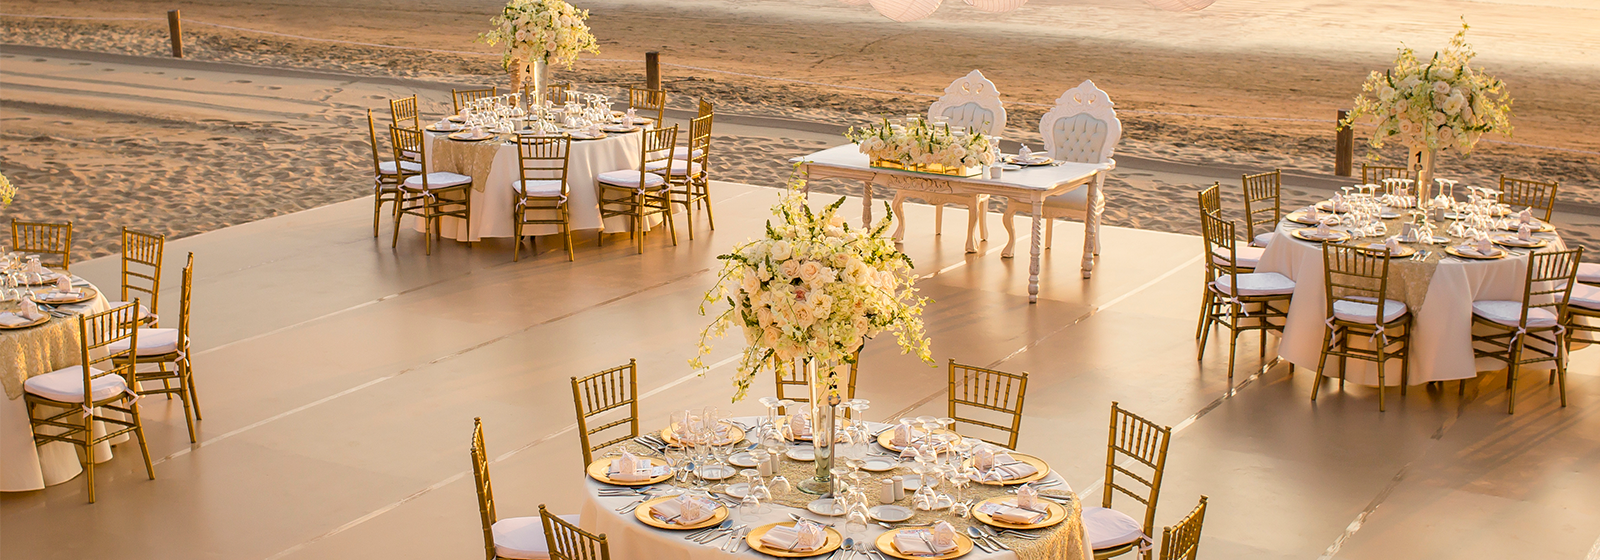 Grand Velas Riviera Nayarit offering Weddings Services